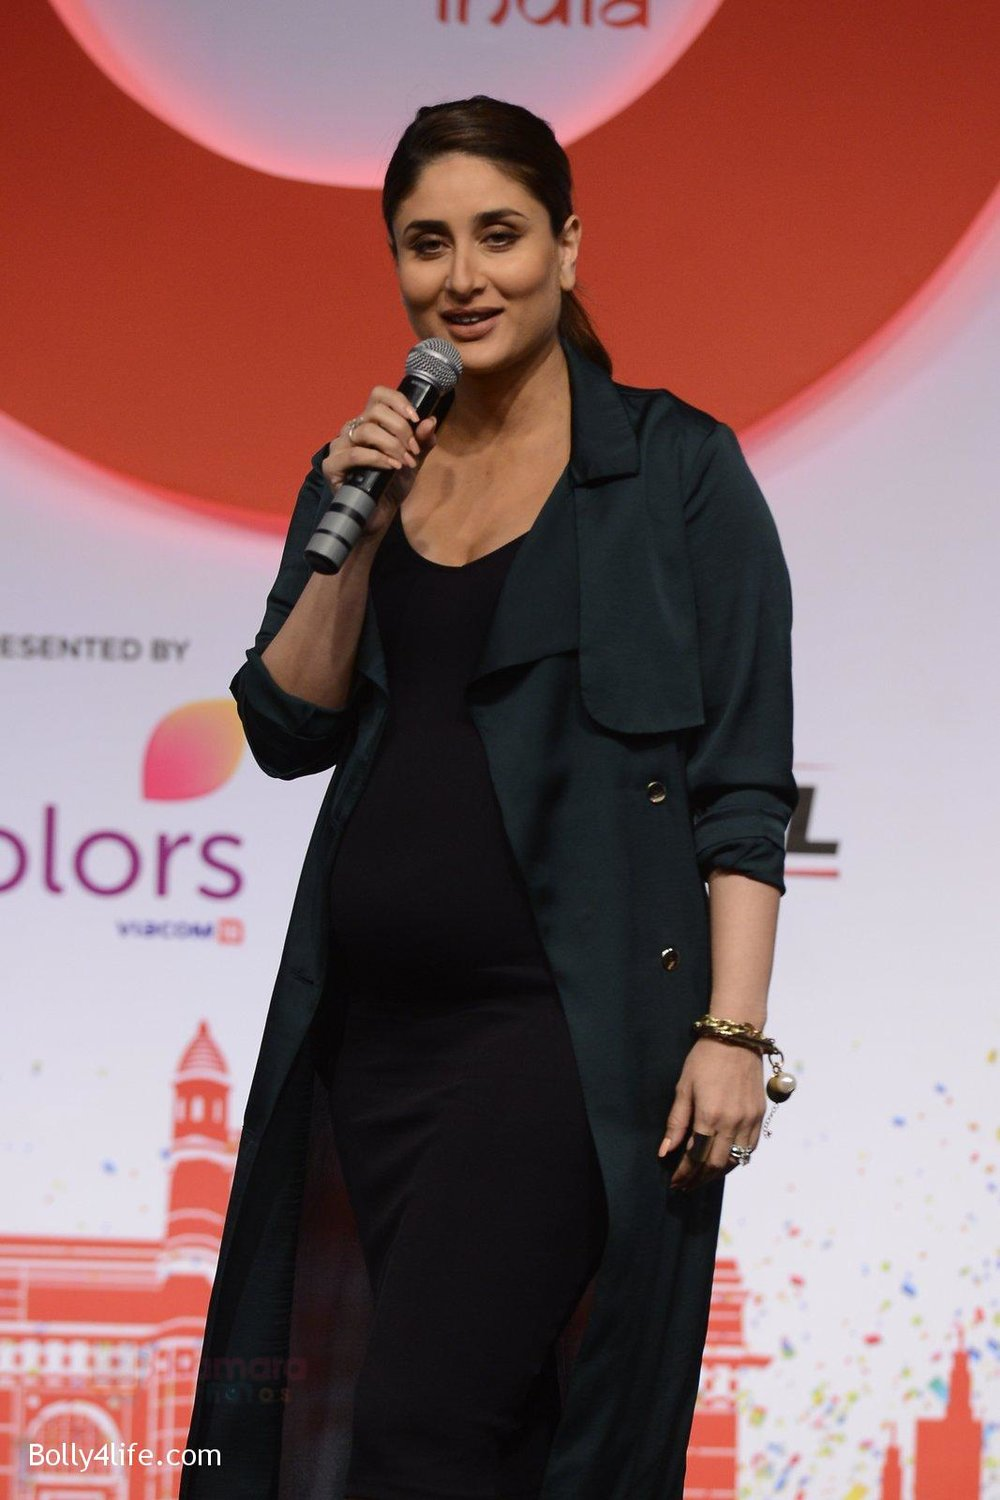 Kareena-Kapoor-Khan-at-the-launch-of-Global-Citizen-India-on-11th-Sept-2016-19.jpg